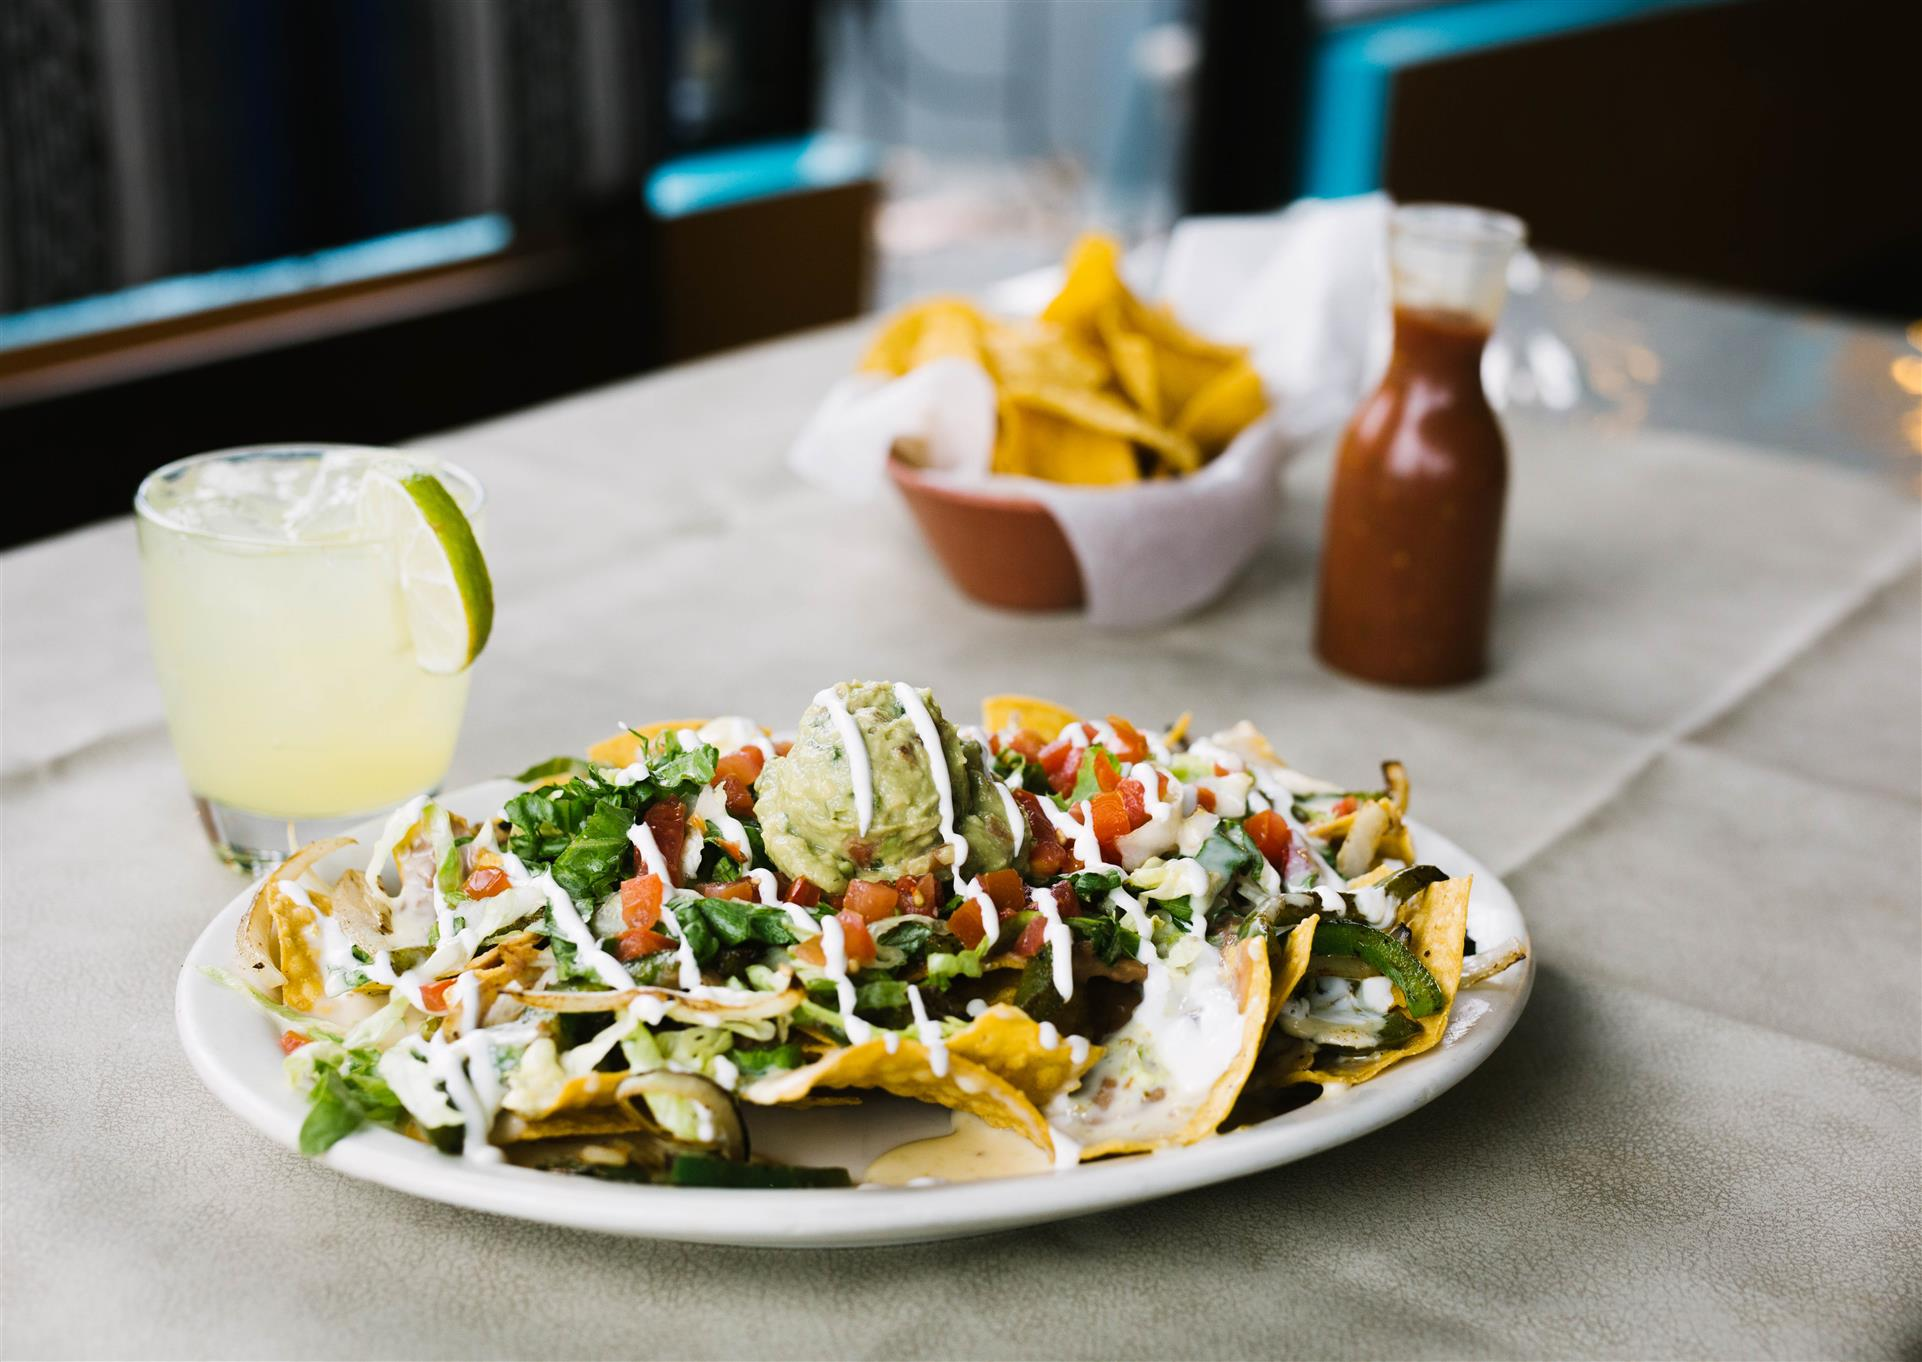 nachos with various toppings and side of margarita